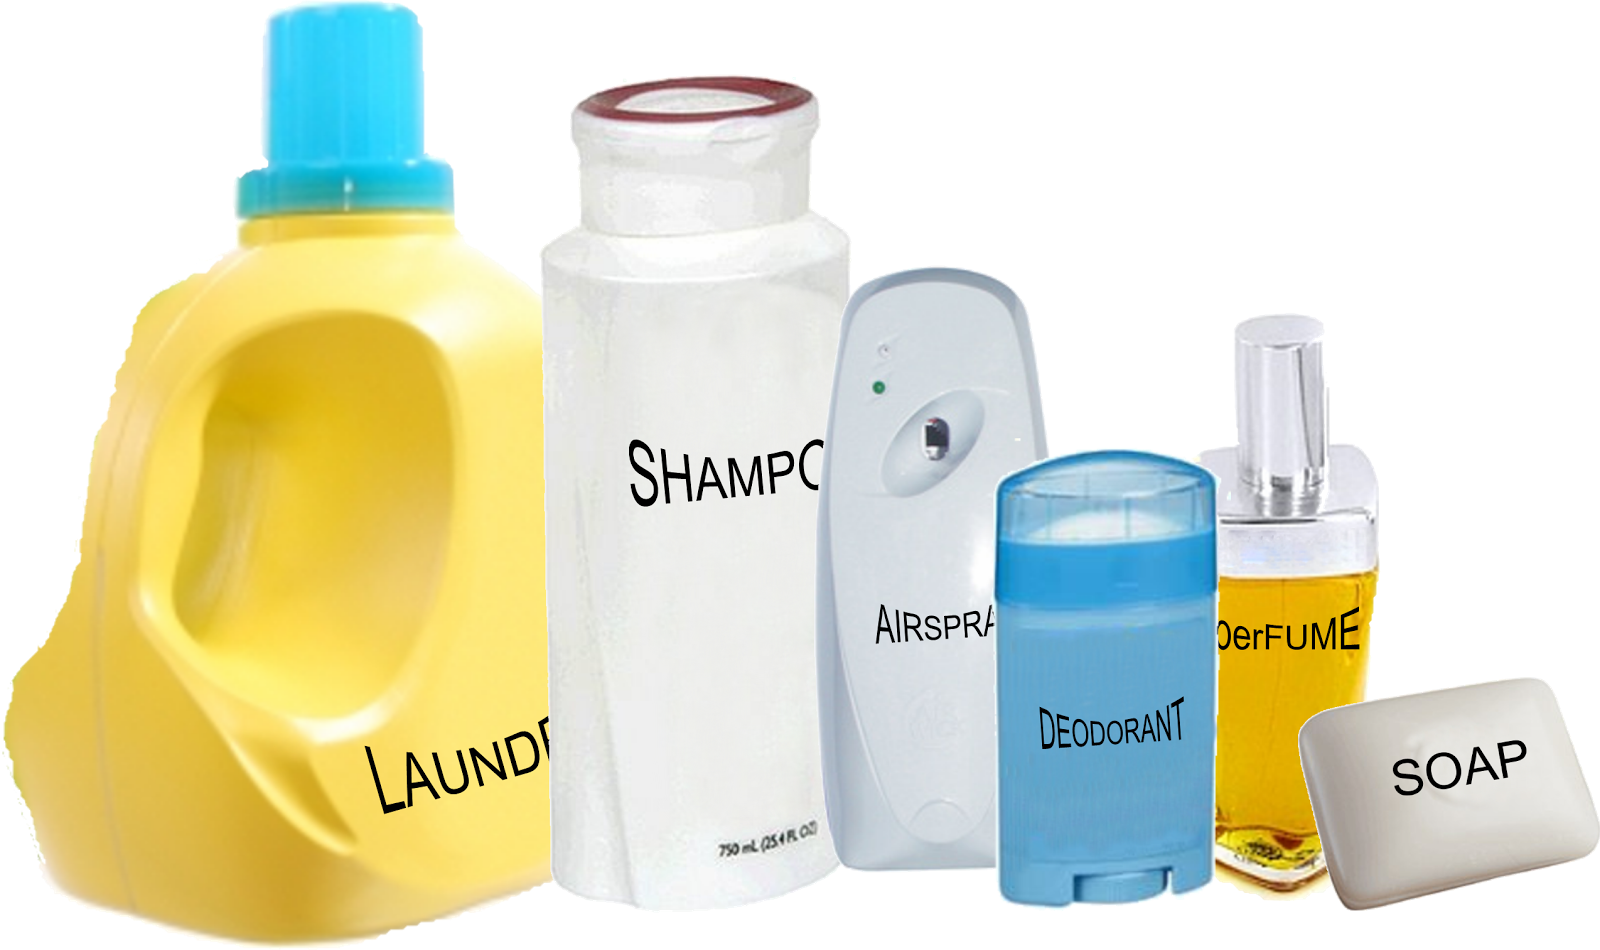 Toxic Chemicals In Personal Care